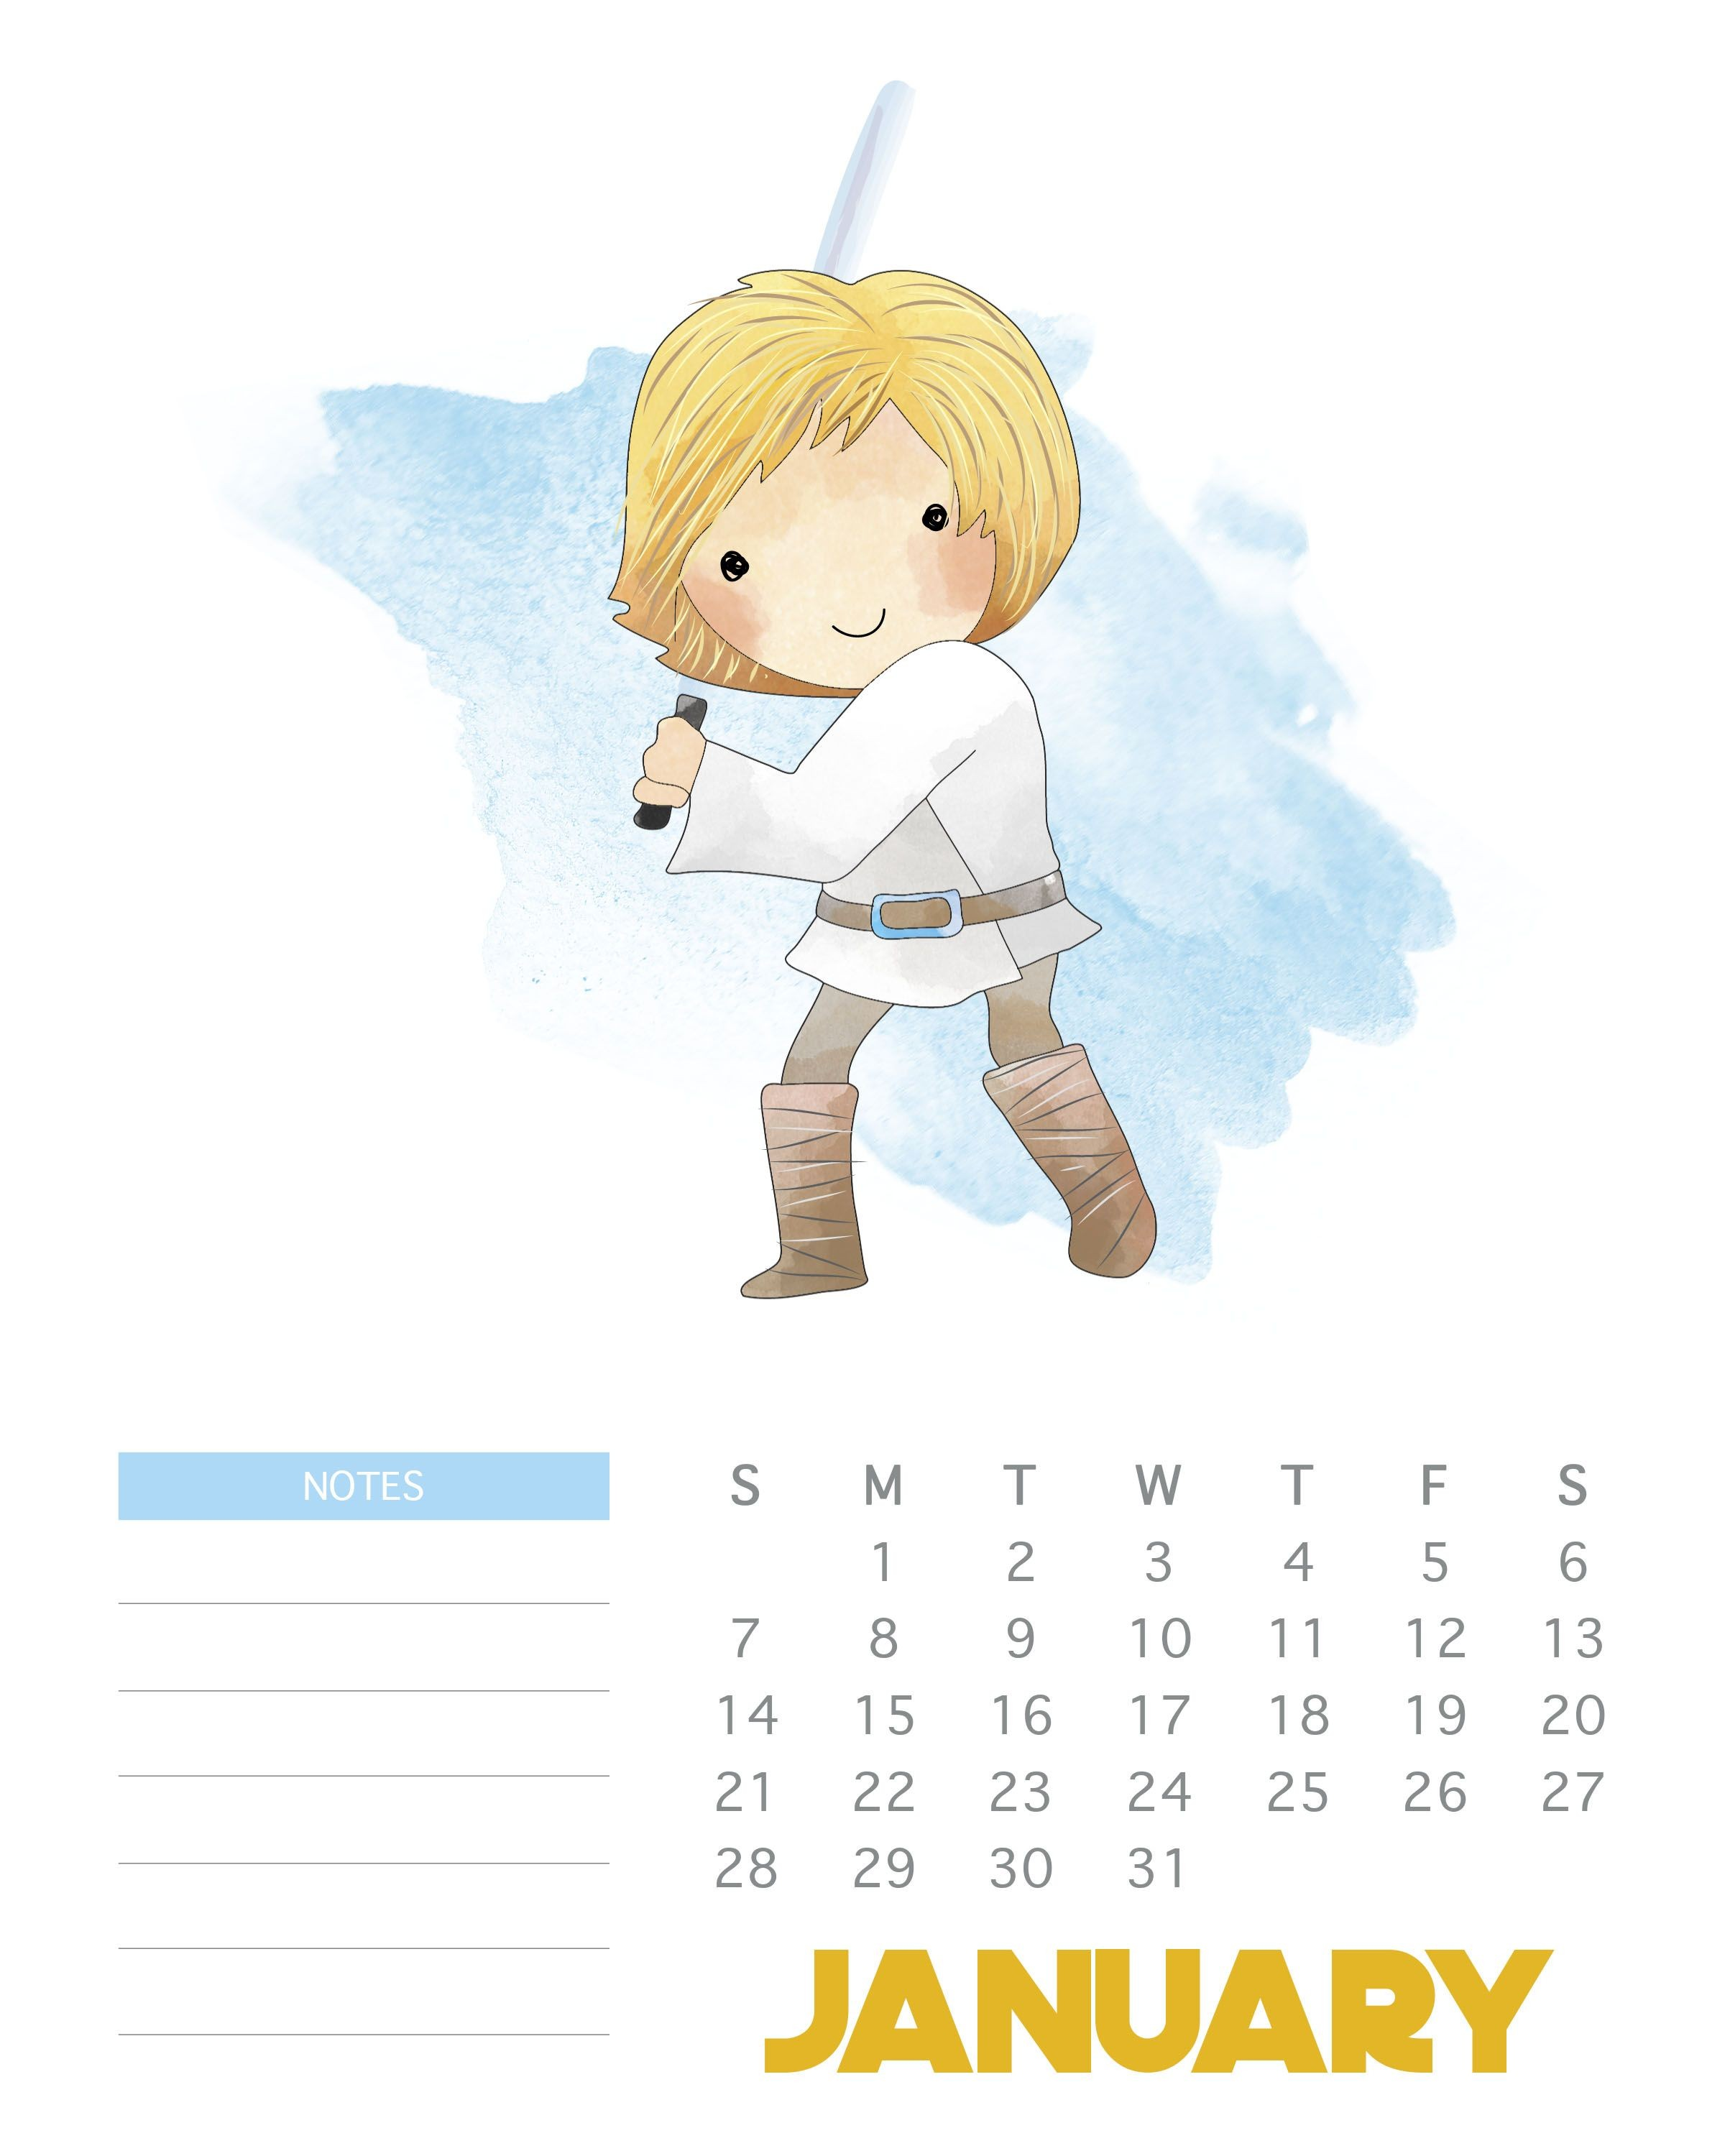 Back by popular demand is our FREE Printable 2018 Star Wars Calendar You all loved the 2017 Edition and so many of you asked for 2018…so here you go